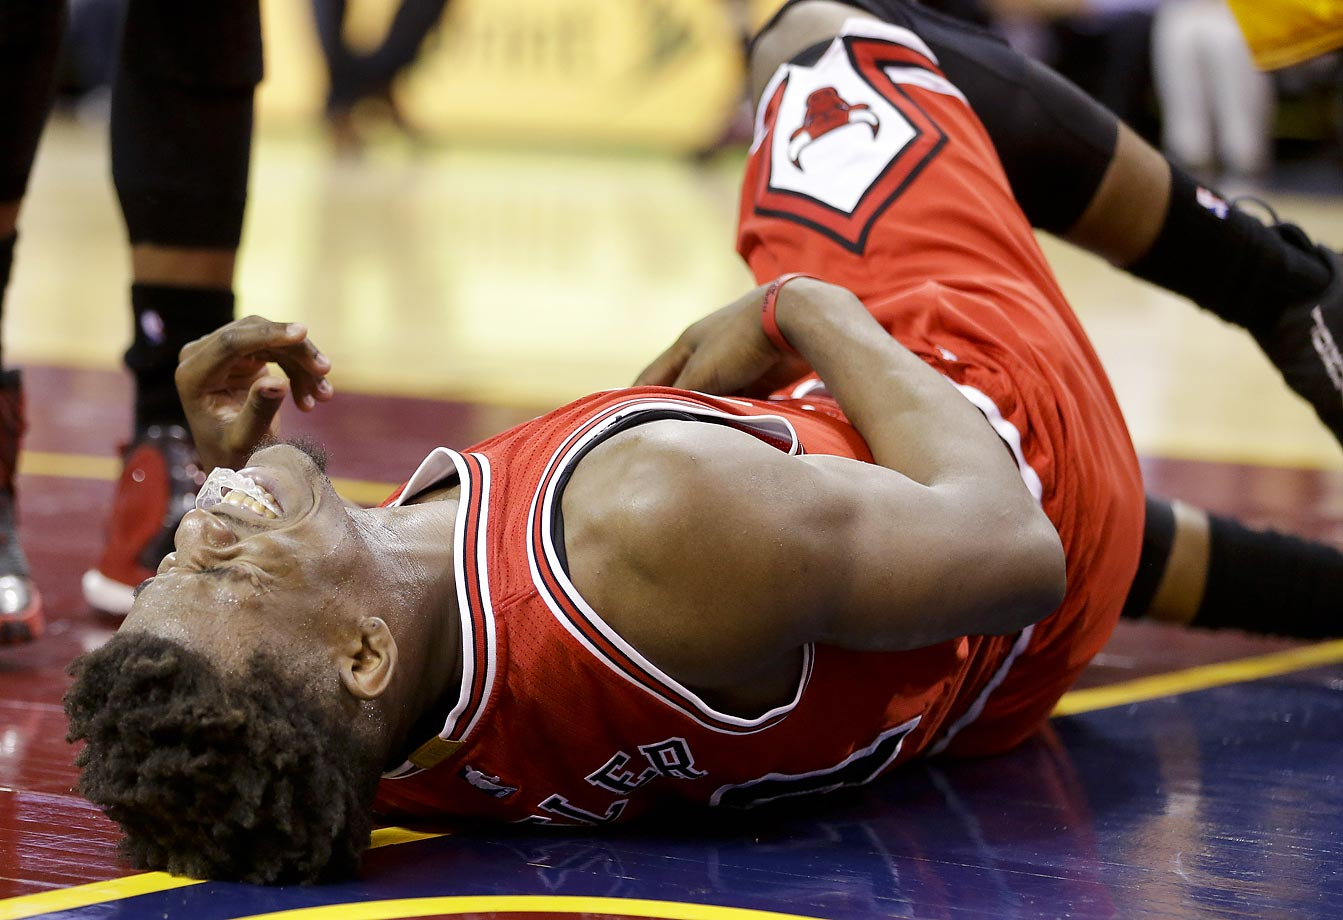 Jimmy Butler of the Chicago Bulls is fouled by the Cavs.